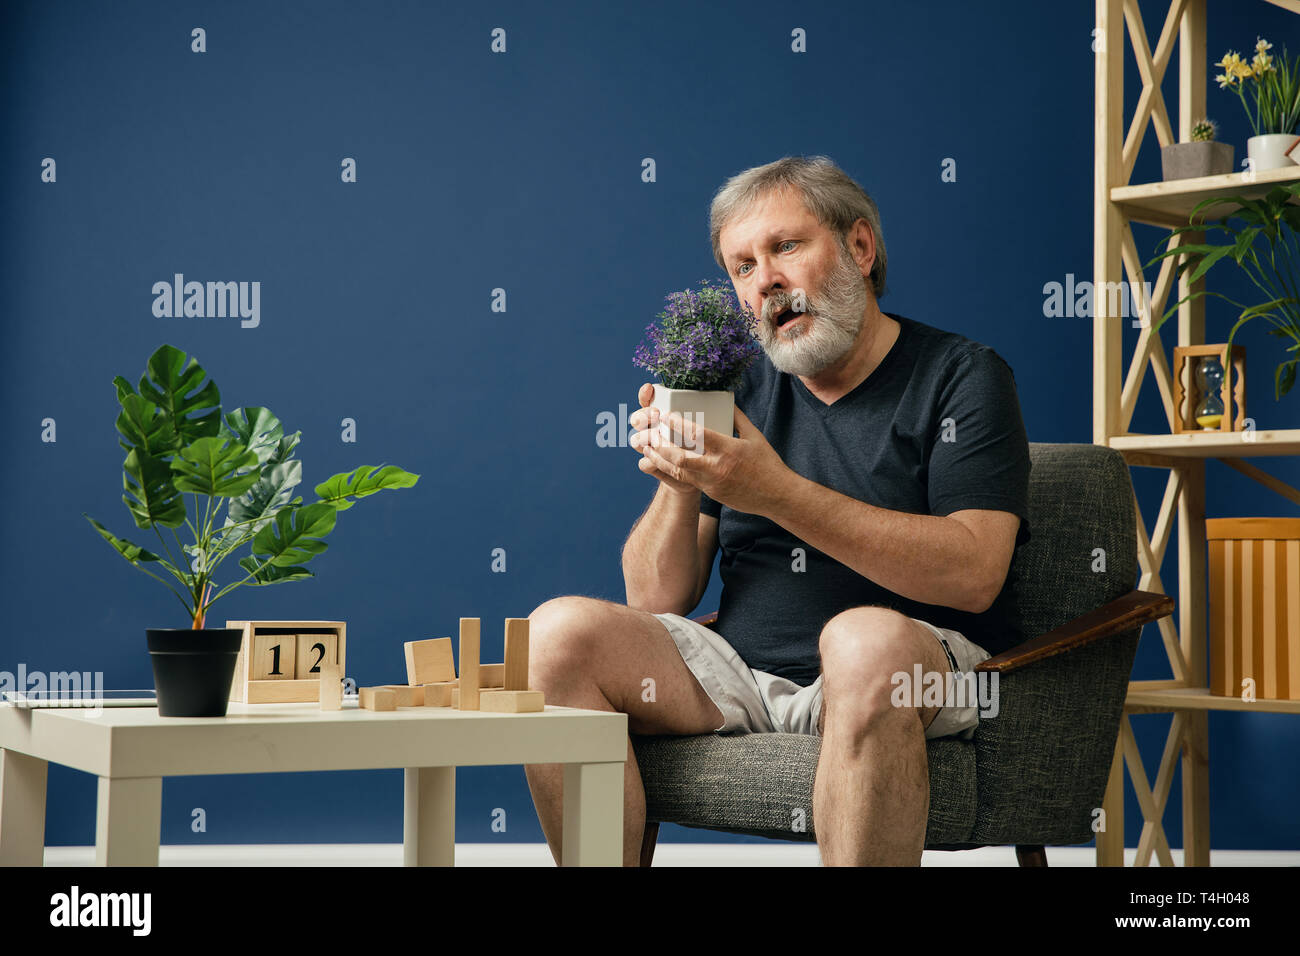 Trying to find happieness. Old bearded man with alzheimer desease has problems with his hands motor skills. Concept of illness, memory loss due to dementia, healthcare, neurological disorder, sadness. - Stock Image